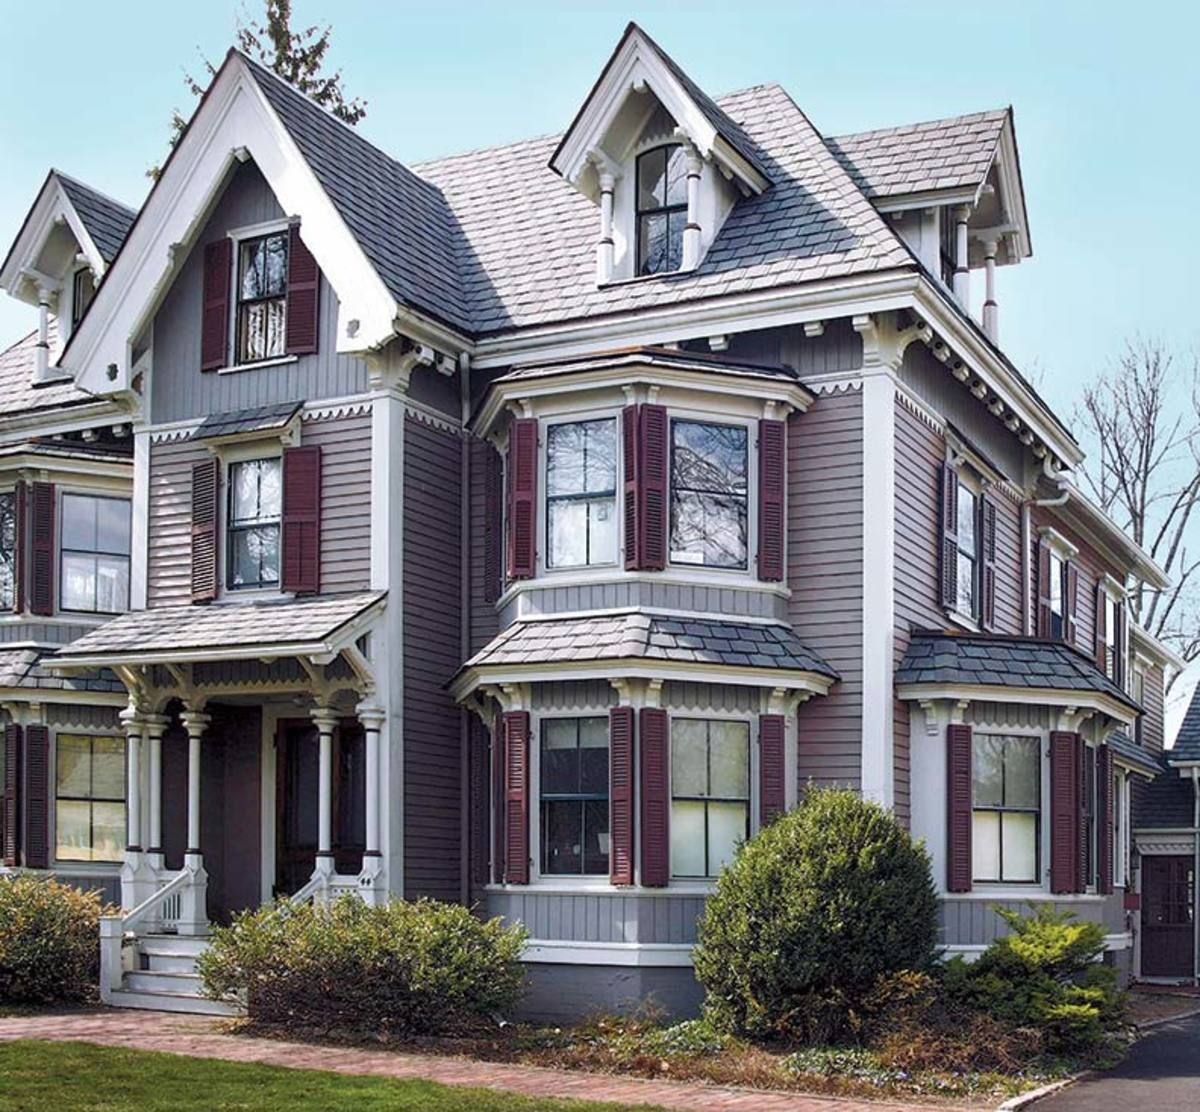 12 rules for victorian polychrome paint schemes on exterior house paint colors schemes id=47441